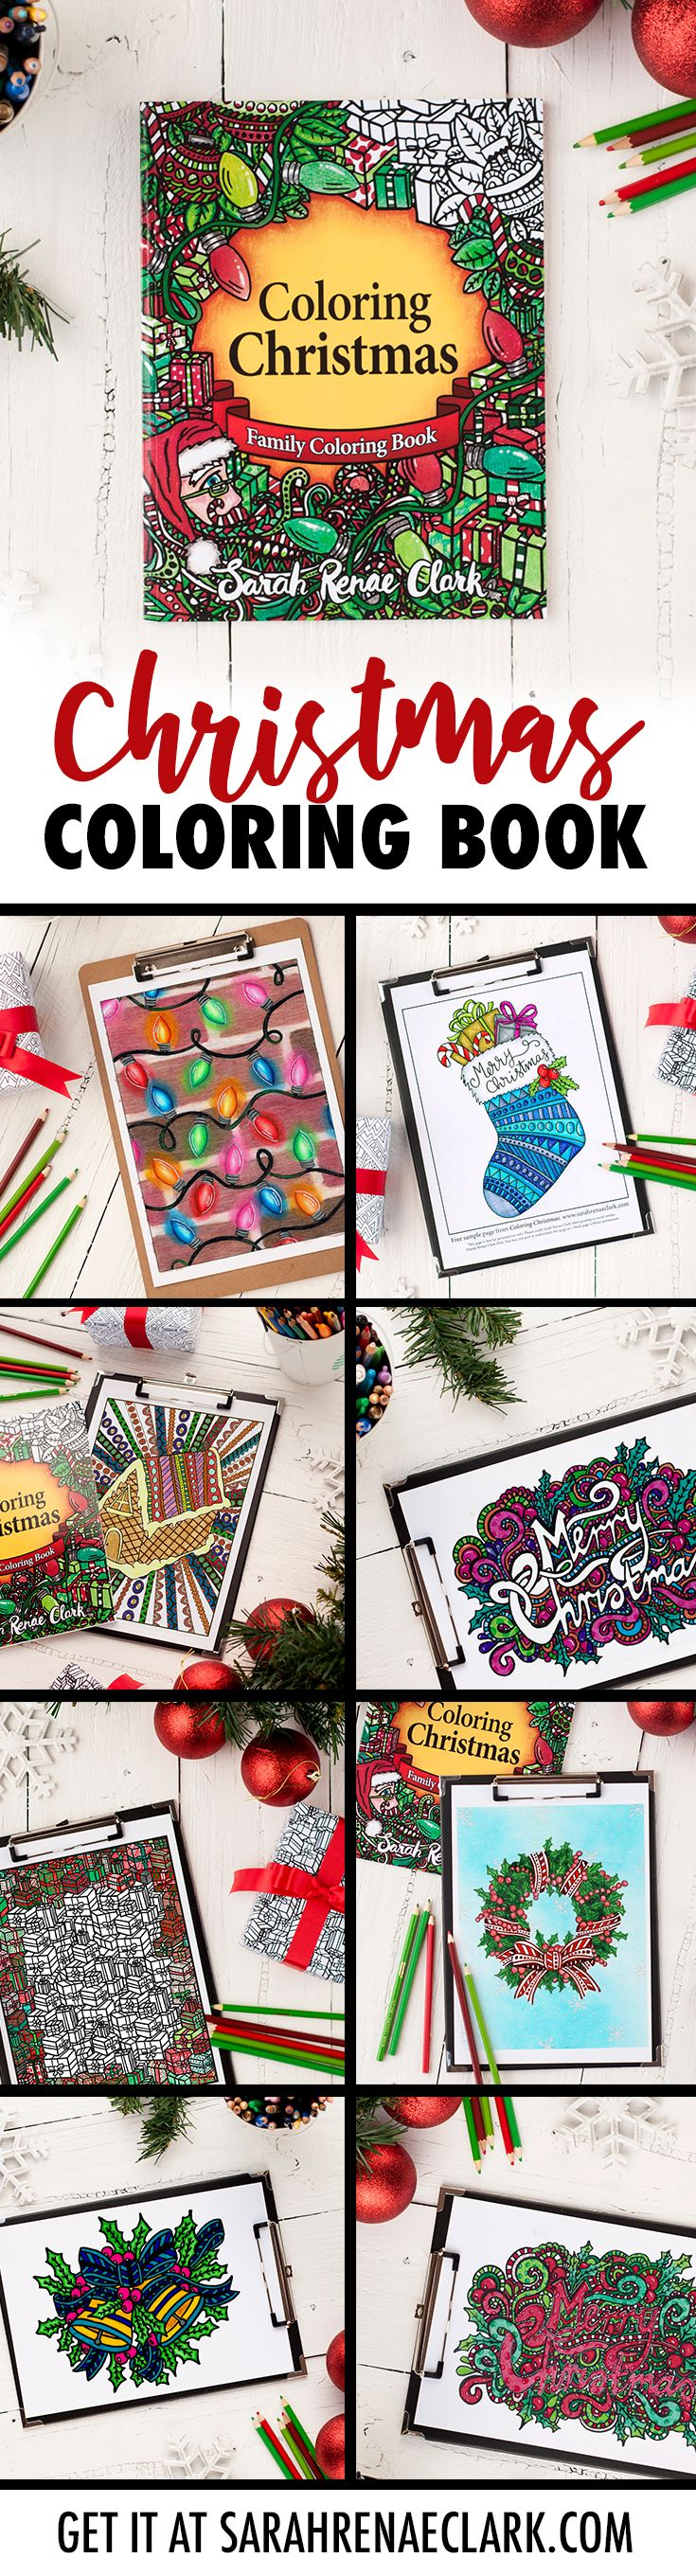 30 Christmas coloring pages - a great Christmas activity for the family! #christmas #coloringpages